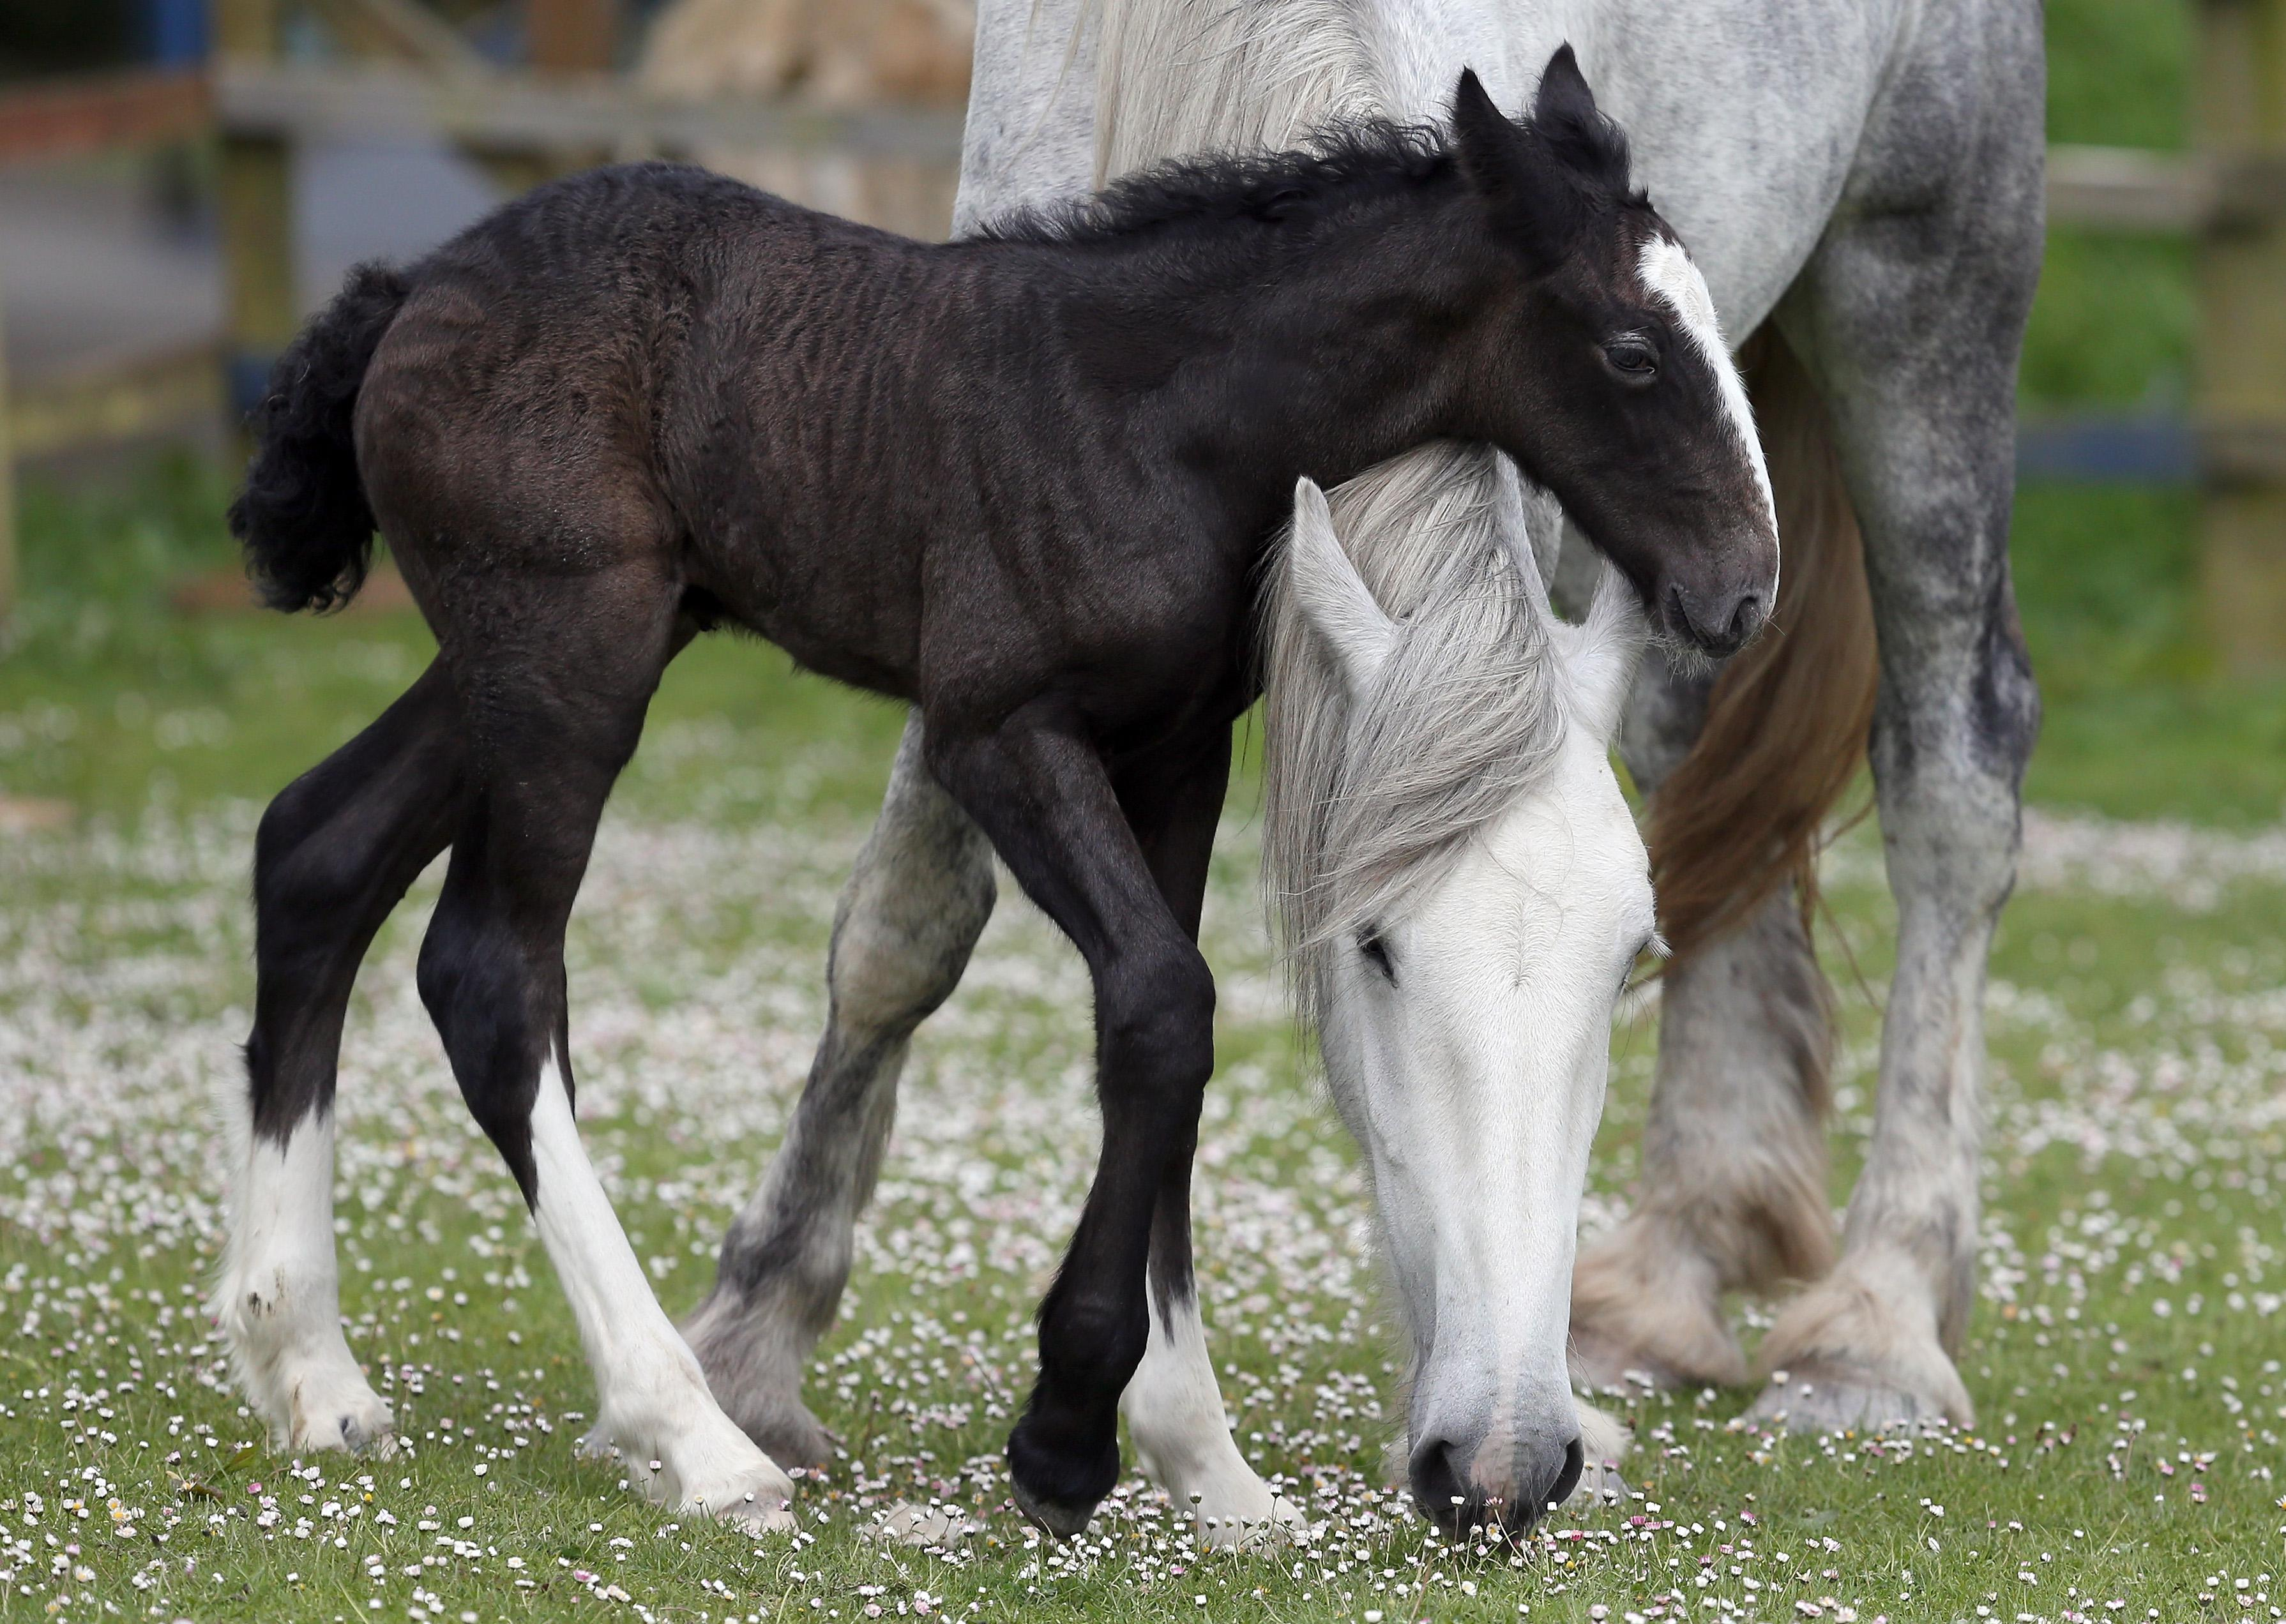 A week-old shire foal with its mother.